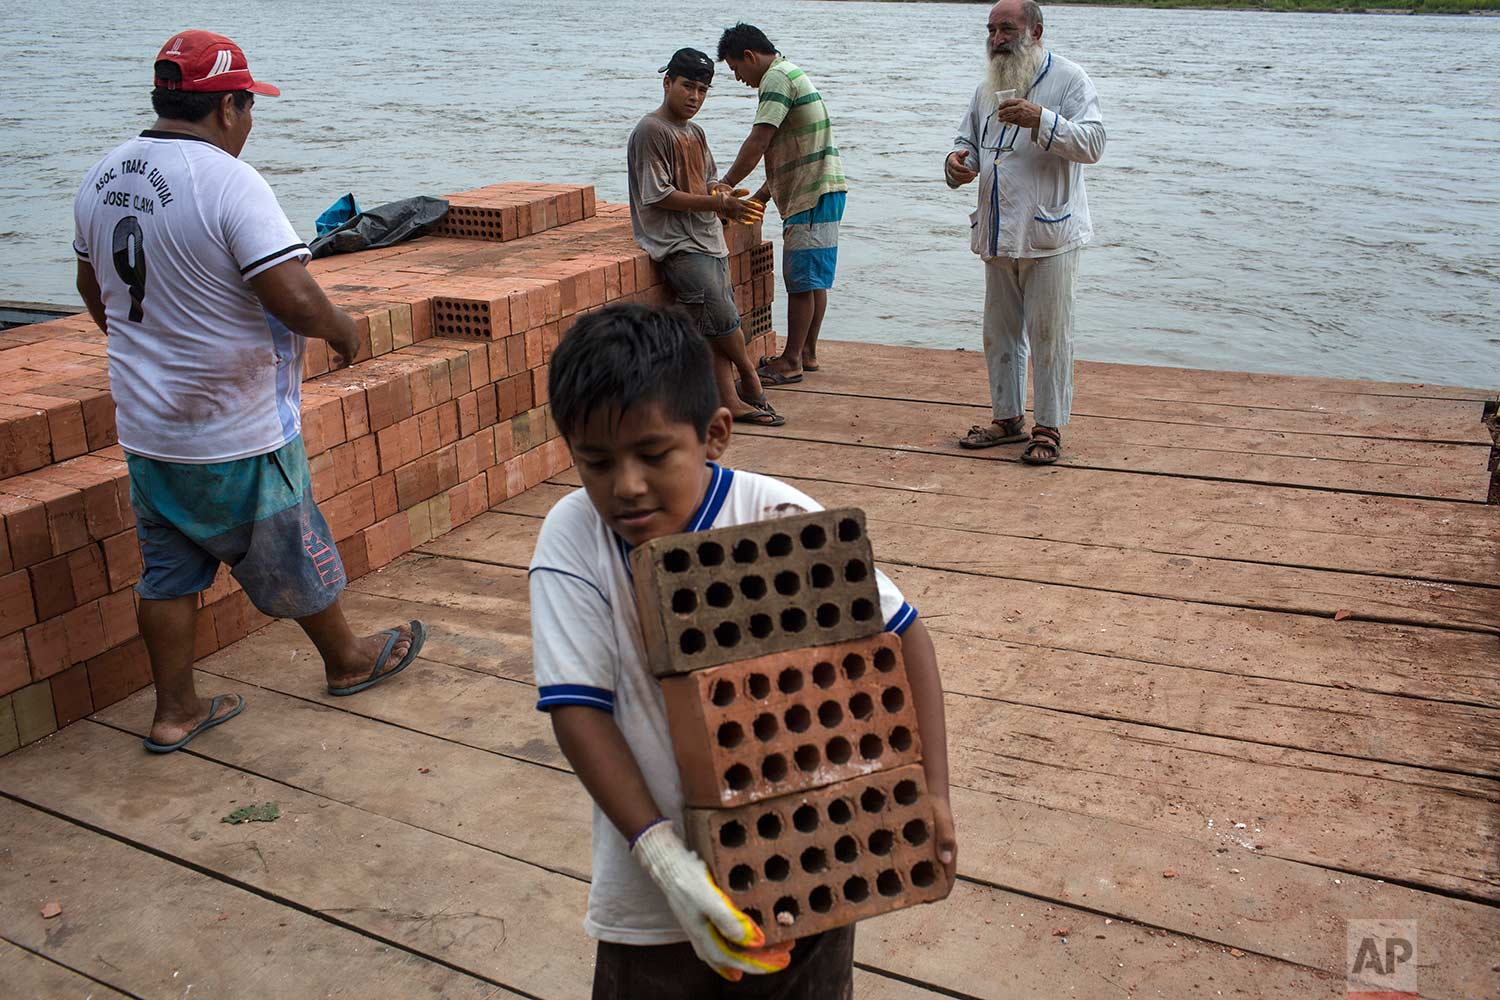 "In this Jan. 8, 2018 photo, Father Pablo Zabala, better known as Padre Pablo, chats with workers offloading bricks brought across a boat on the Inambari River, in Puerto Carlos, part of Peru's Madre de Dios region in the Amazon. The 70-year-old Spanish priest says he had long felt compelled to work not just with the righteous, but the sinners, and to connect with ""the life of the common people."" (AP Photo/Rodrigo Abd) 